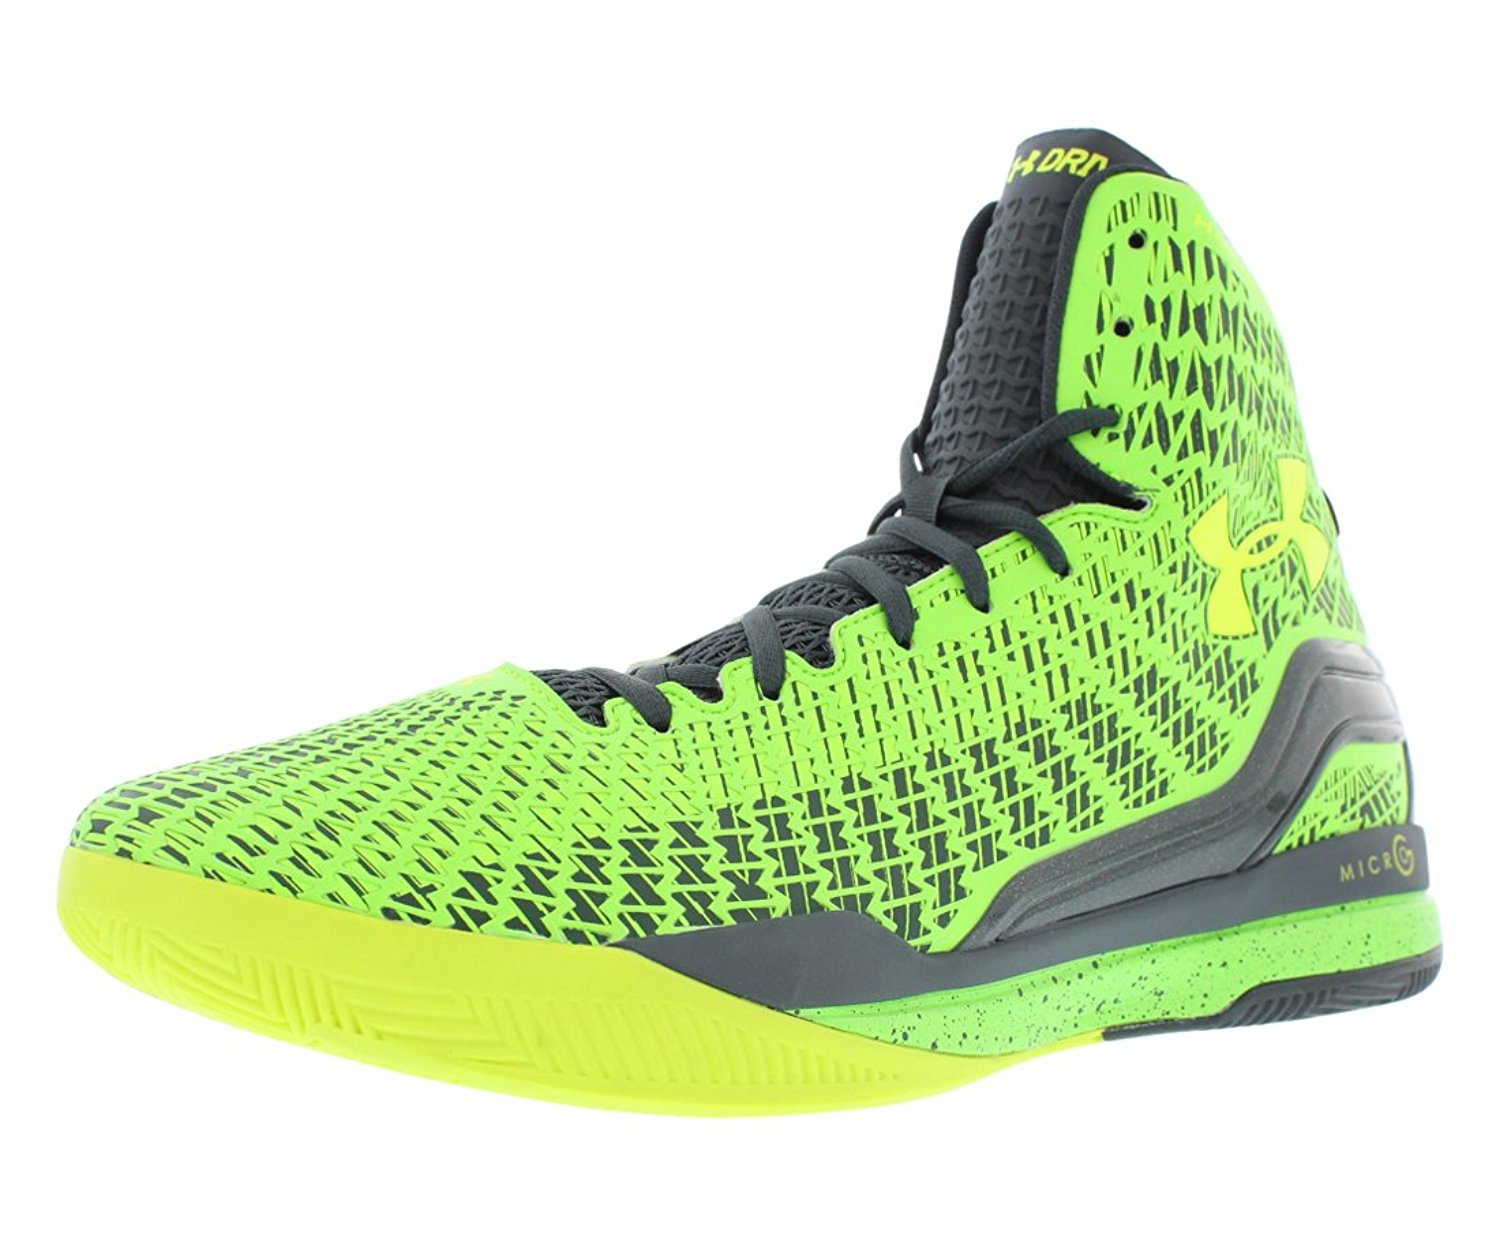 e278f9f1765e Buy Under Armour Micro G Clutchfit Drive Basketball Mens Shoes Size ...